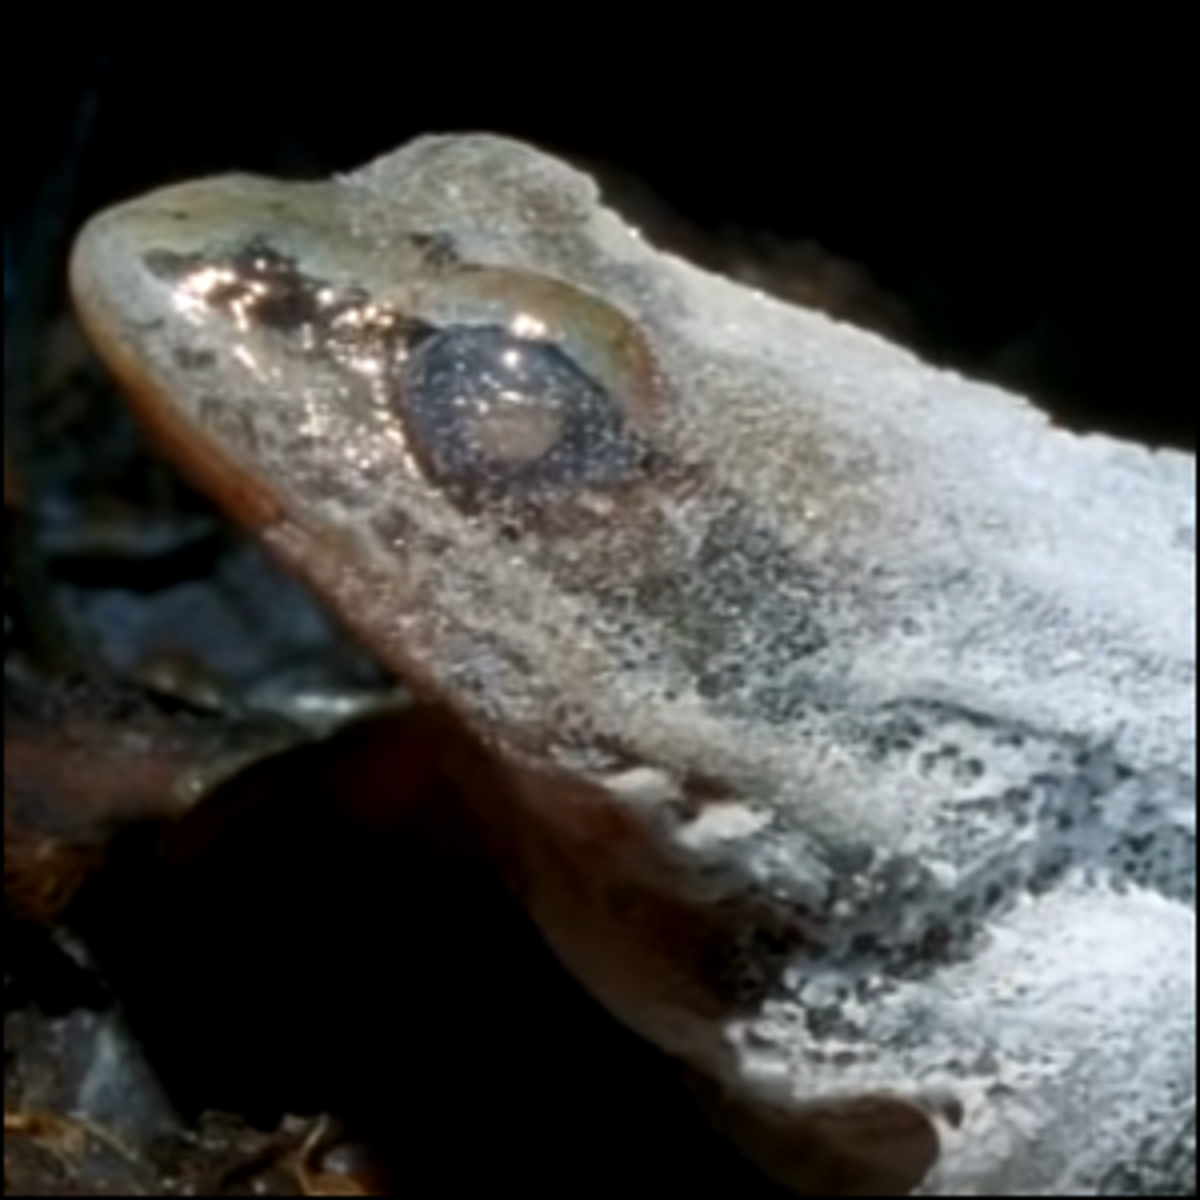 A wood frog that is beginning to thaw out.